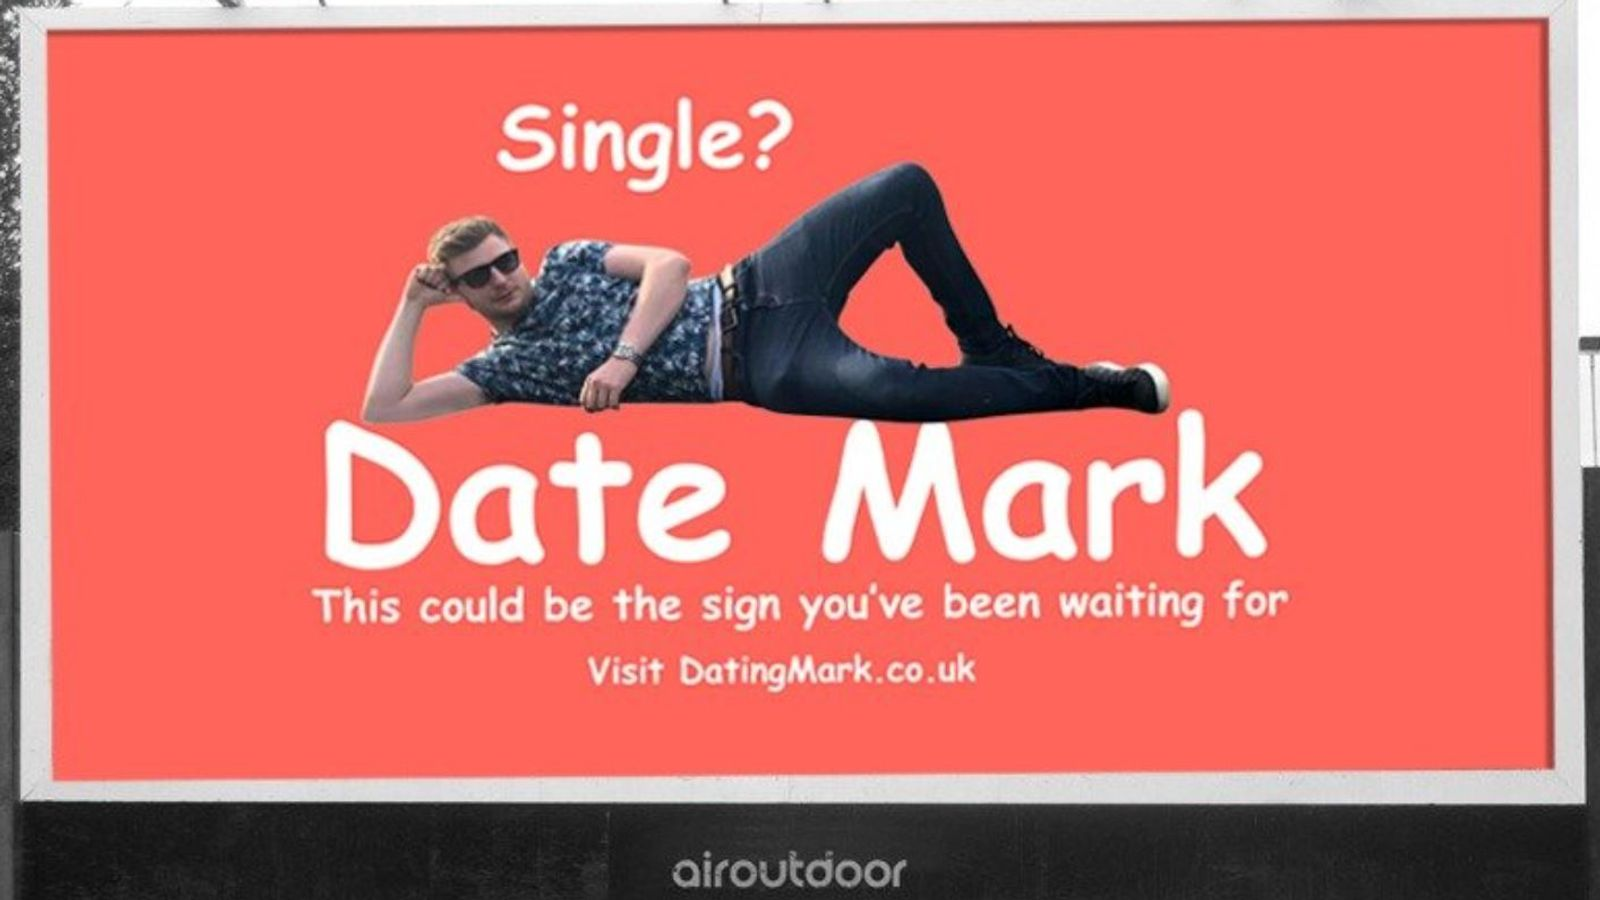 Man lands Valentine's date after advertising himself on a billboard